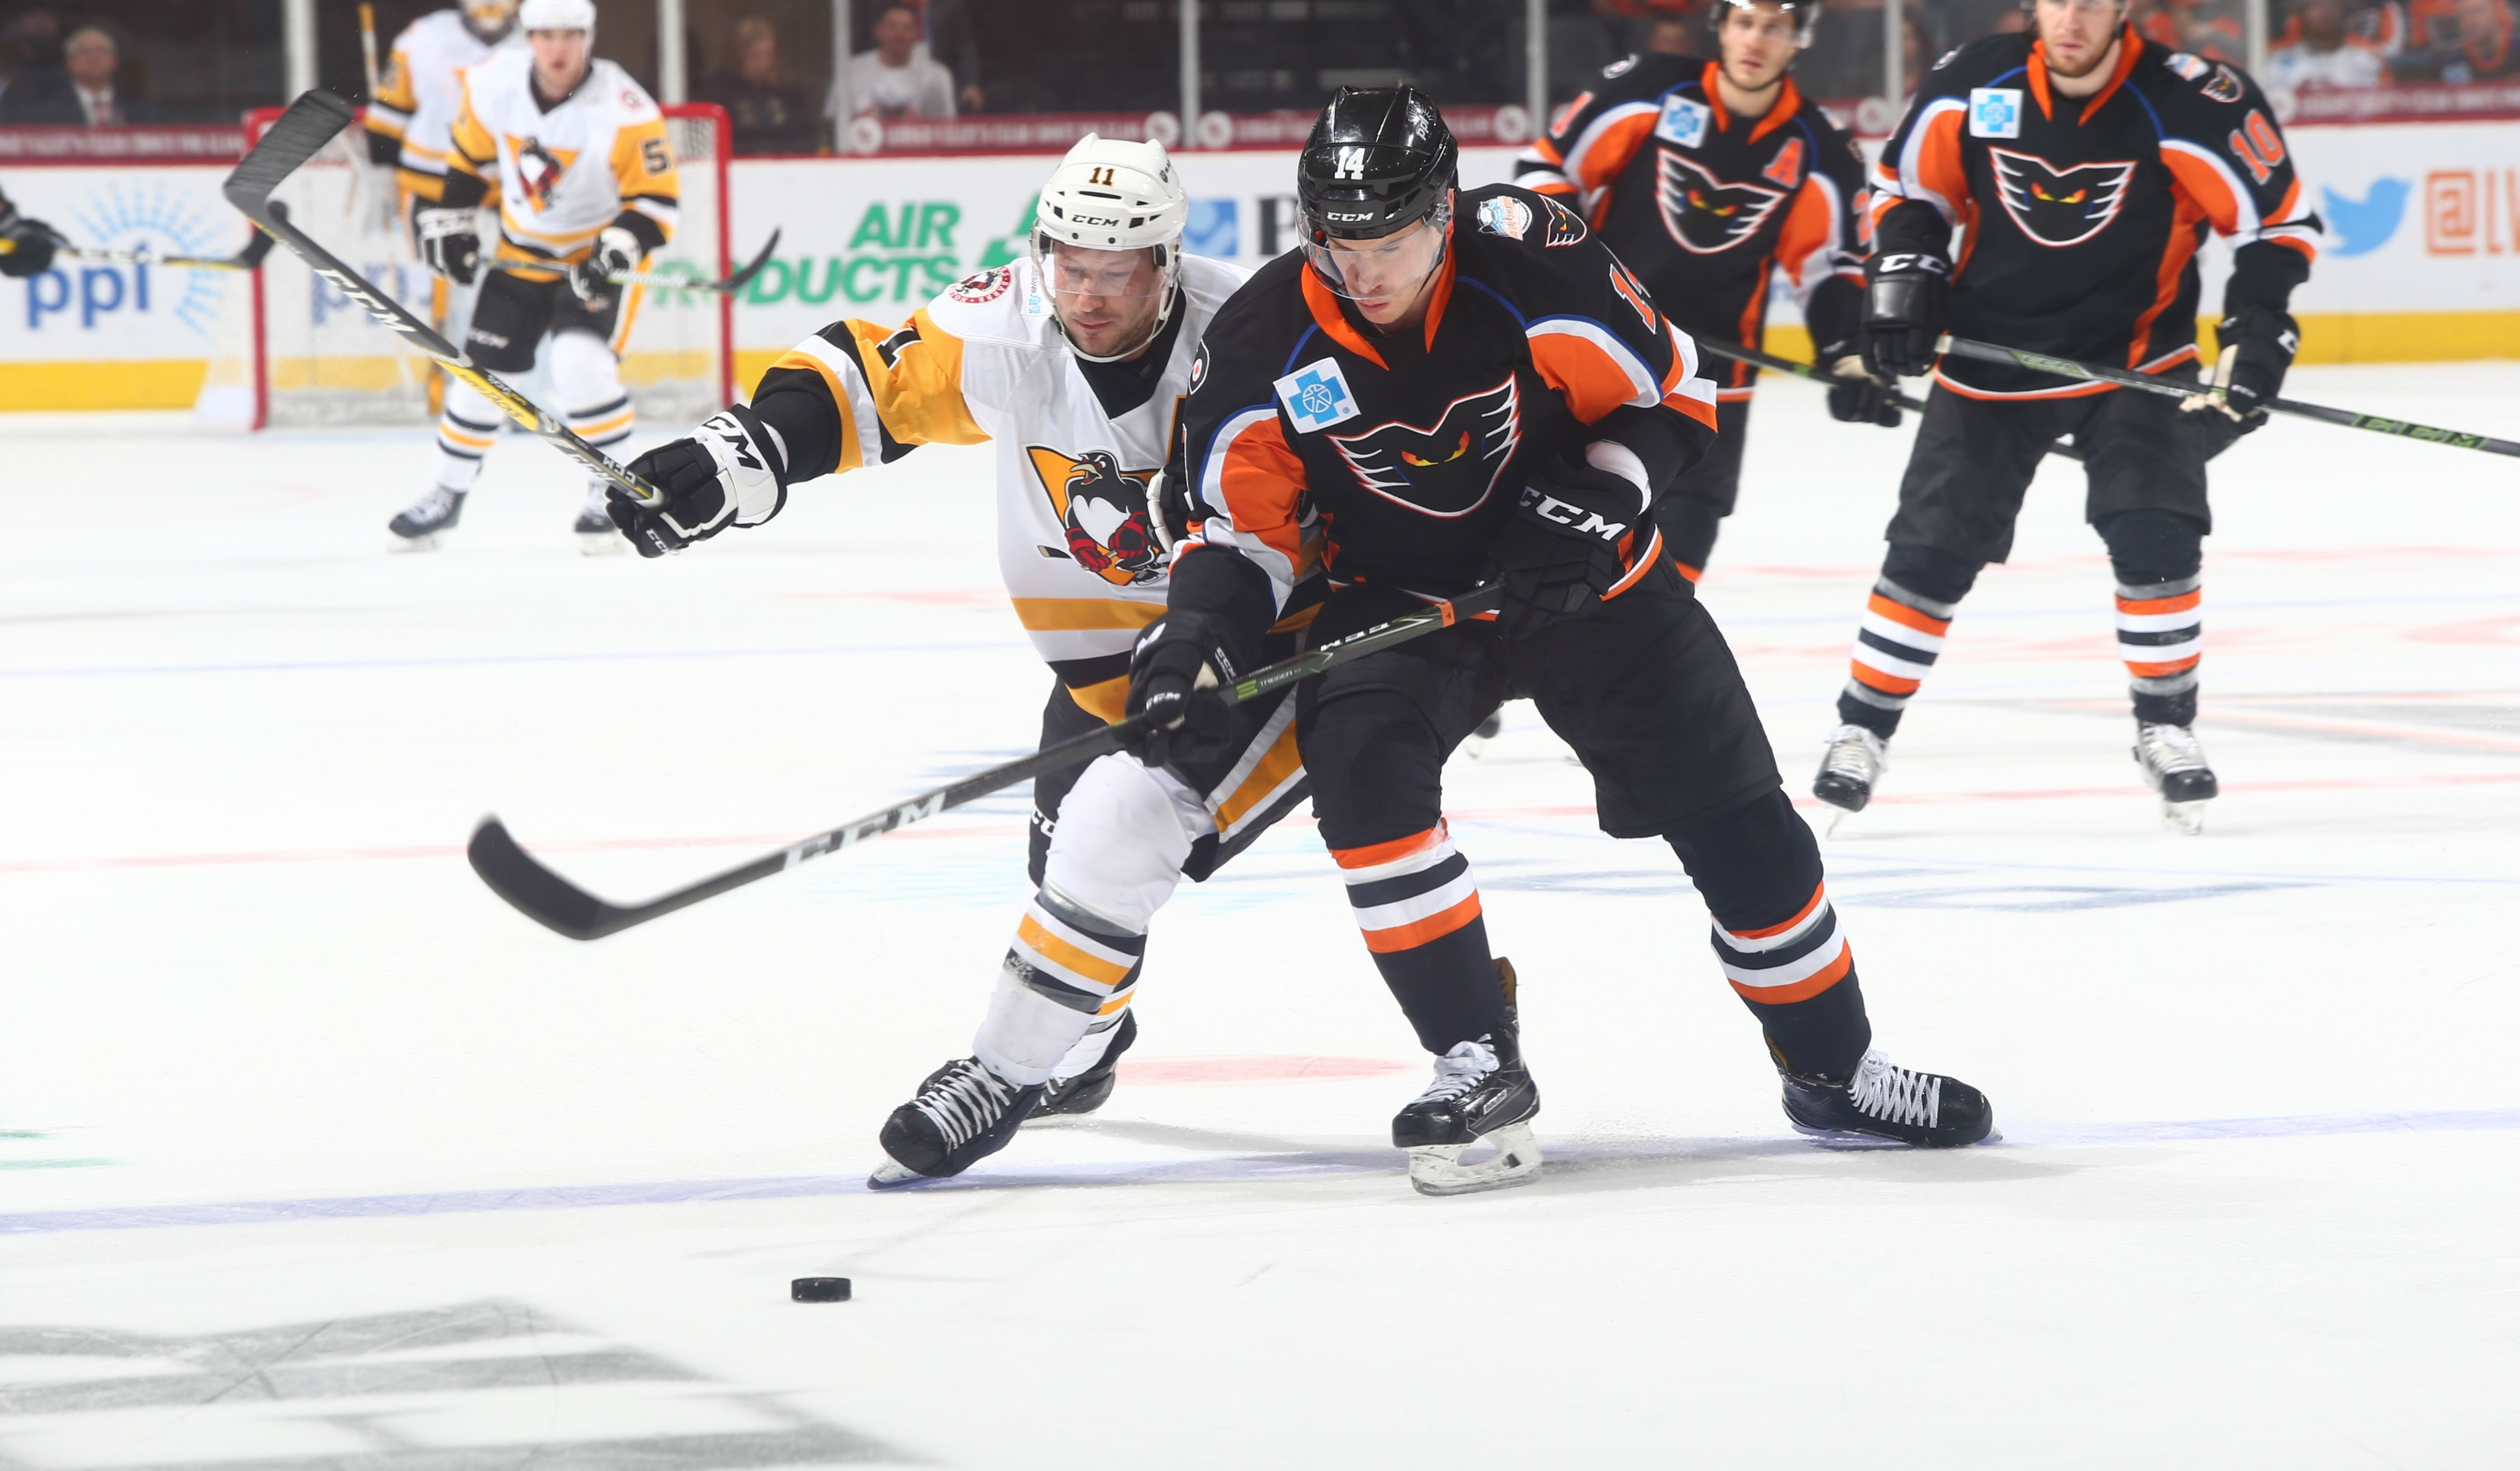 Playoff Atmosphere at Sold-Out PPL Center for Phantoms/Penguins Rivalry